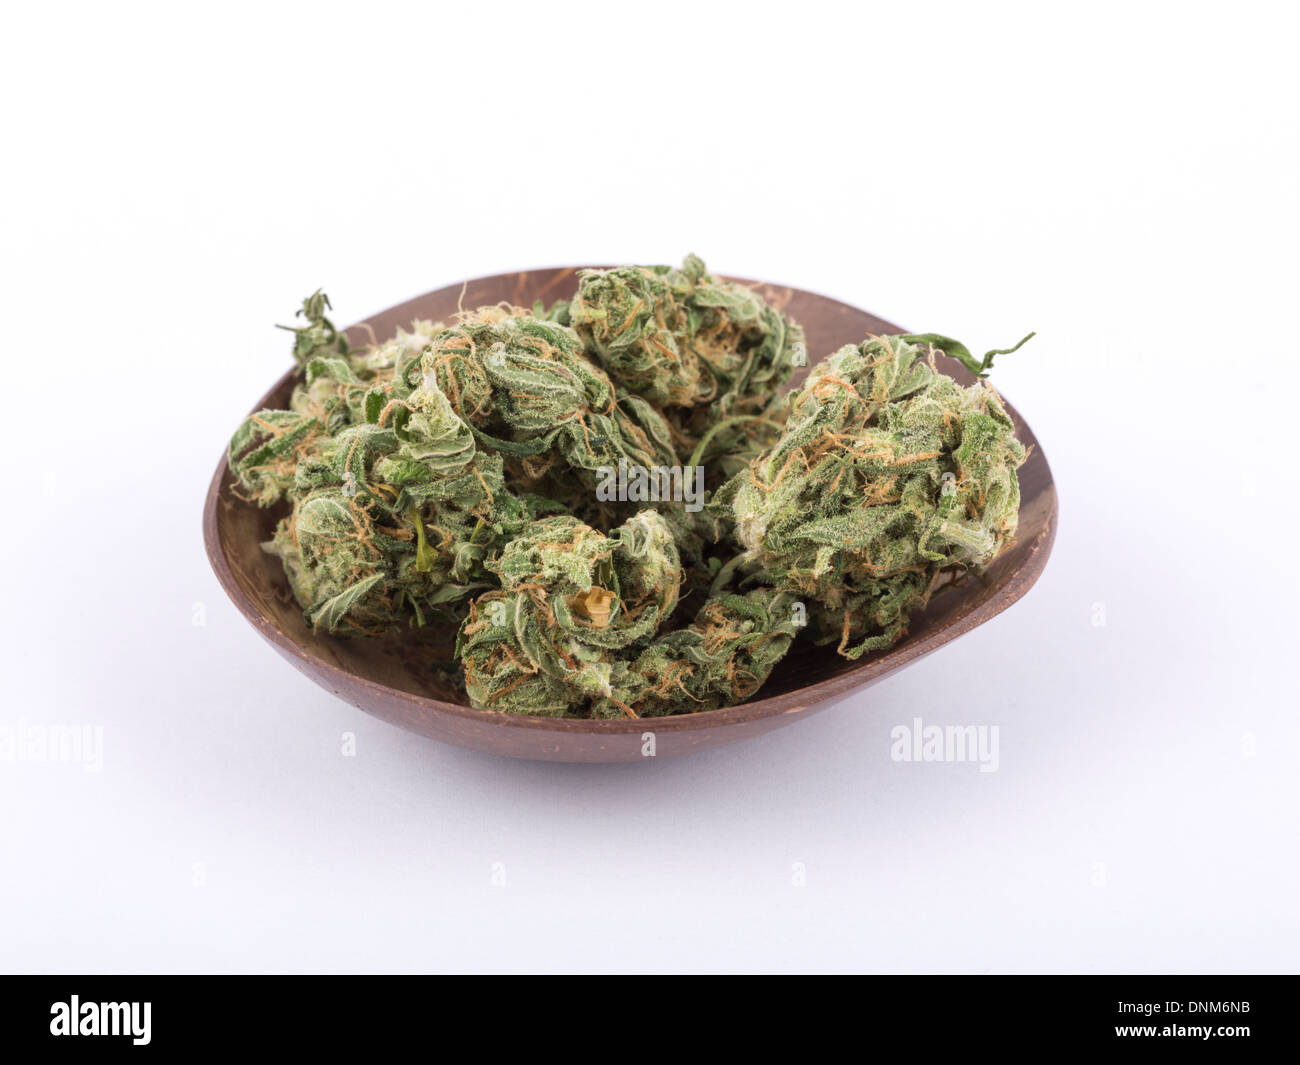 Cannabis buds on a coconut shell shot on a seamless white background. - Stock Image